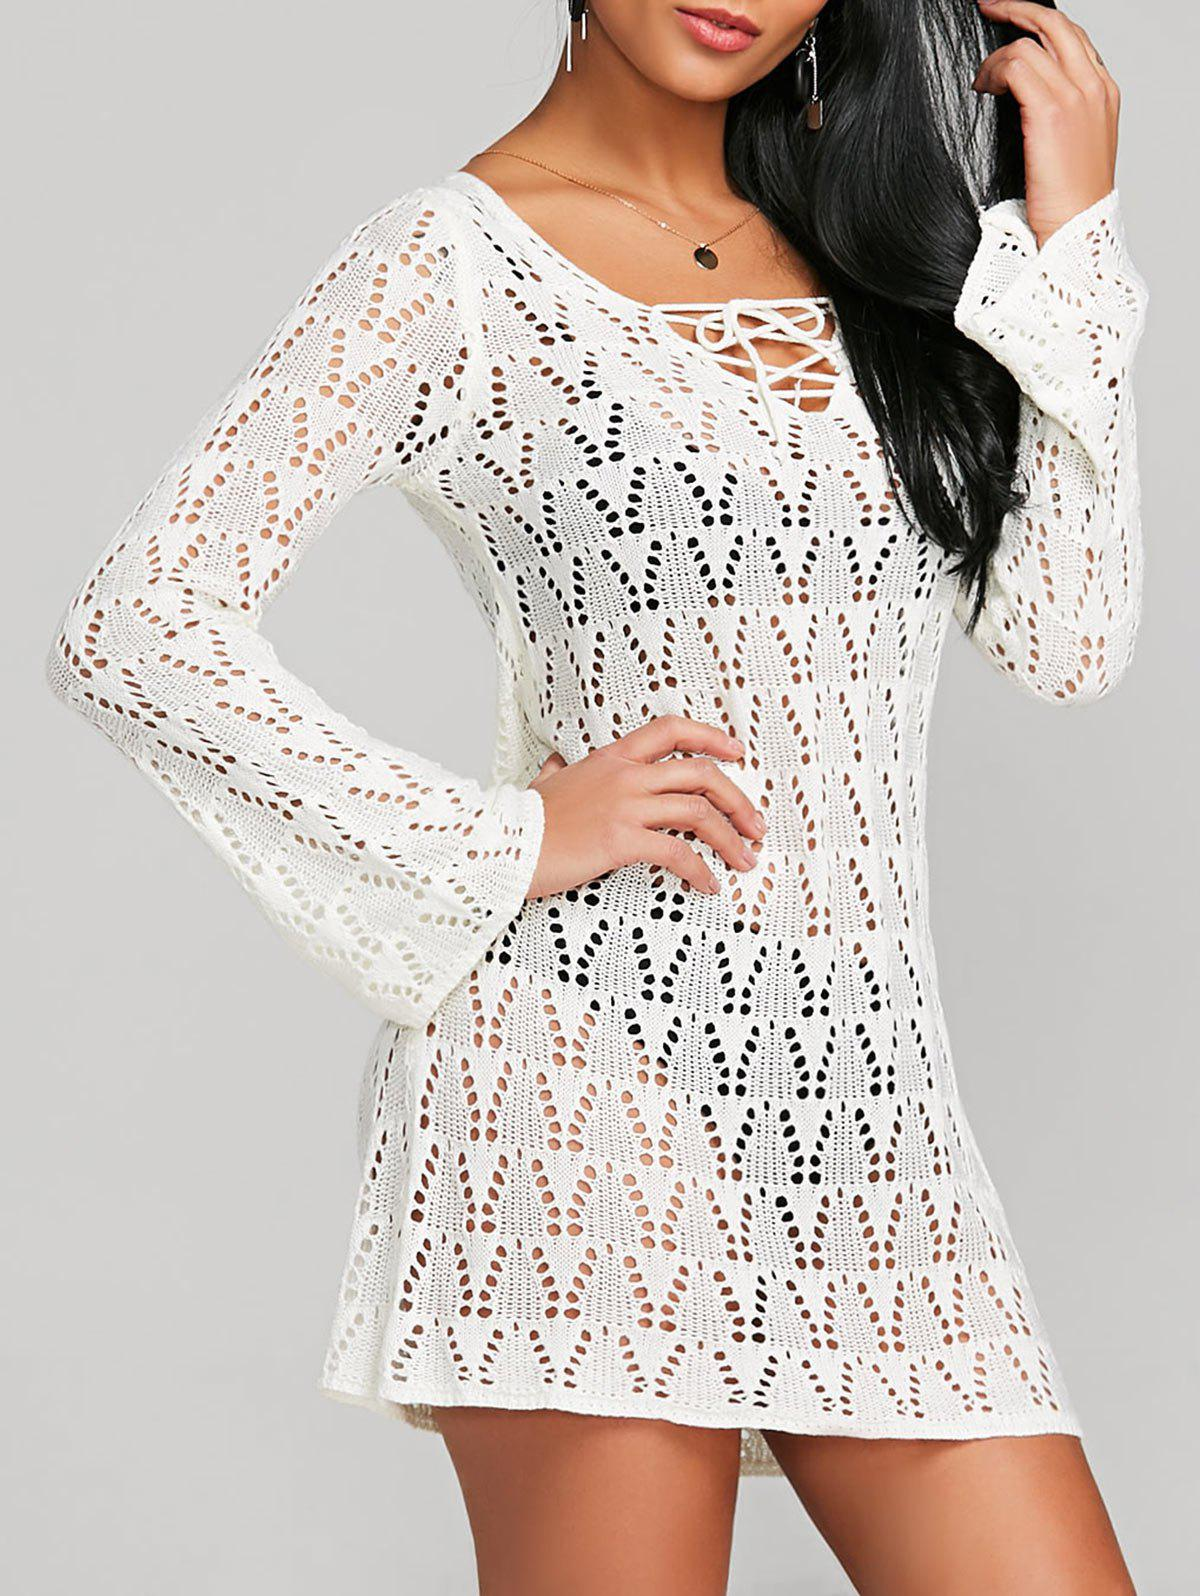 Discount Lace Up Crochet Cover Up Dress